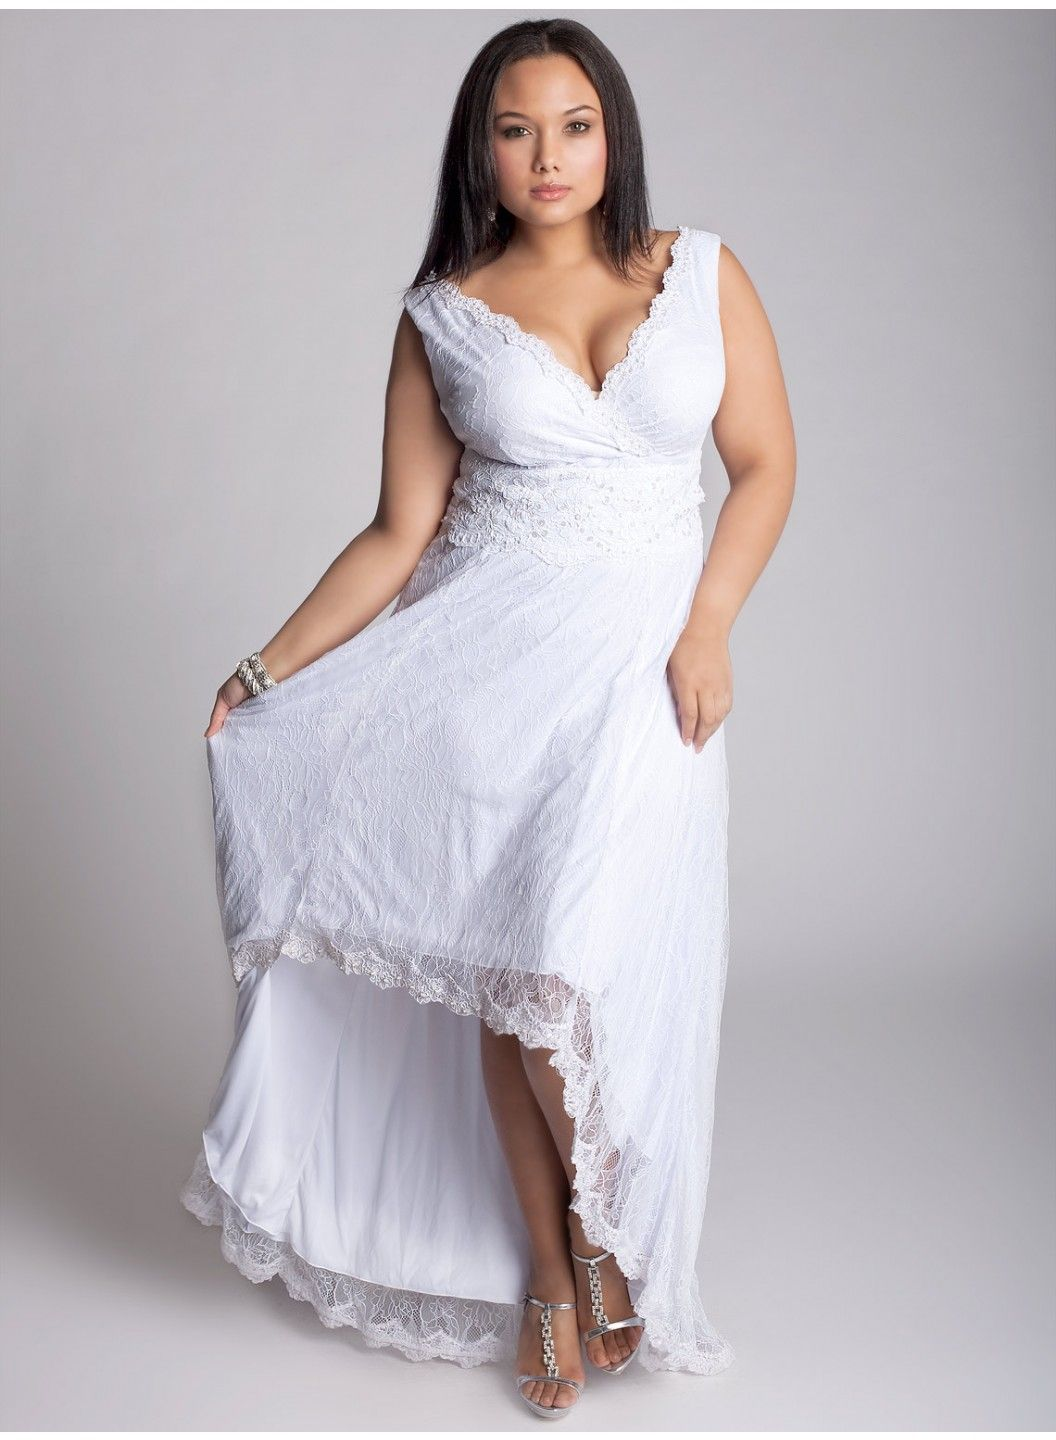 Pretty and affordable wedding gown for curvy ladies. | Fête ...